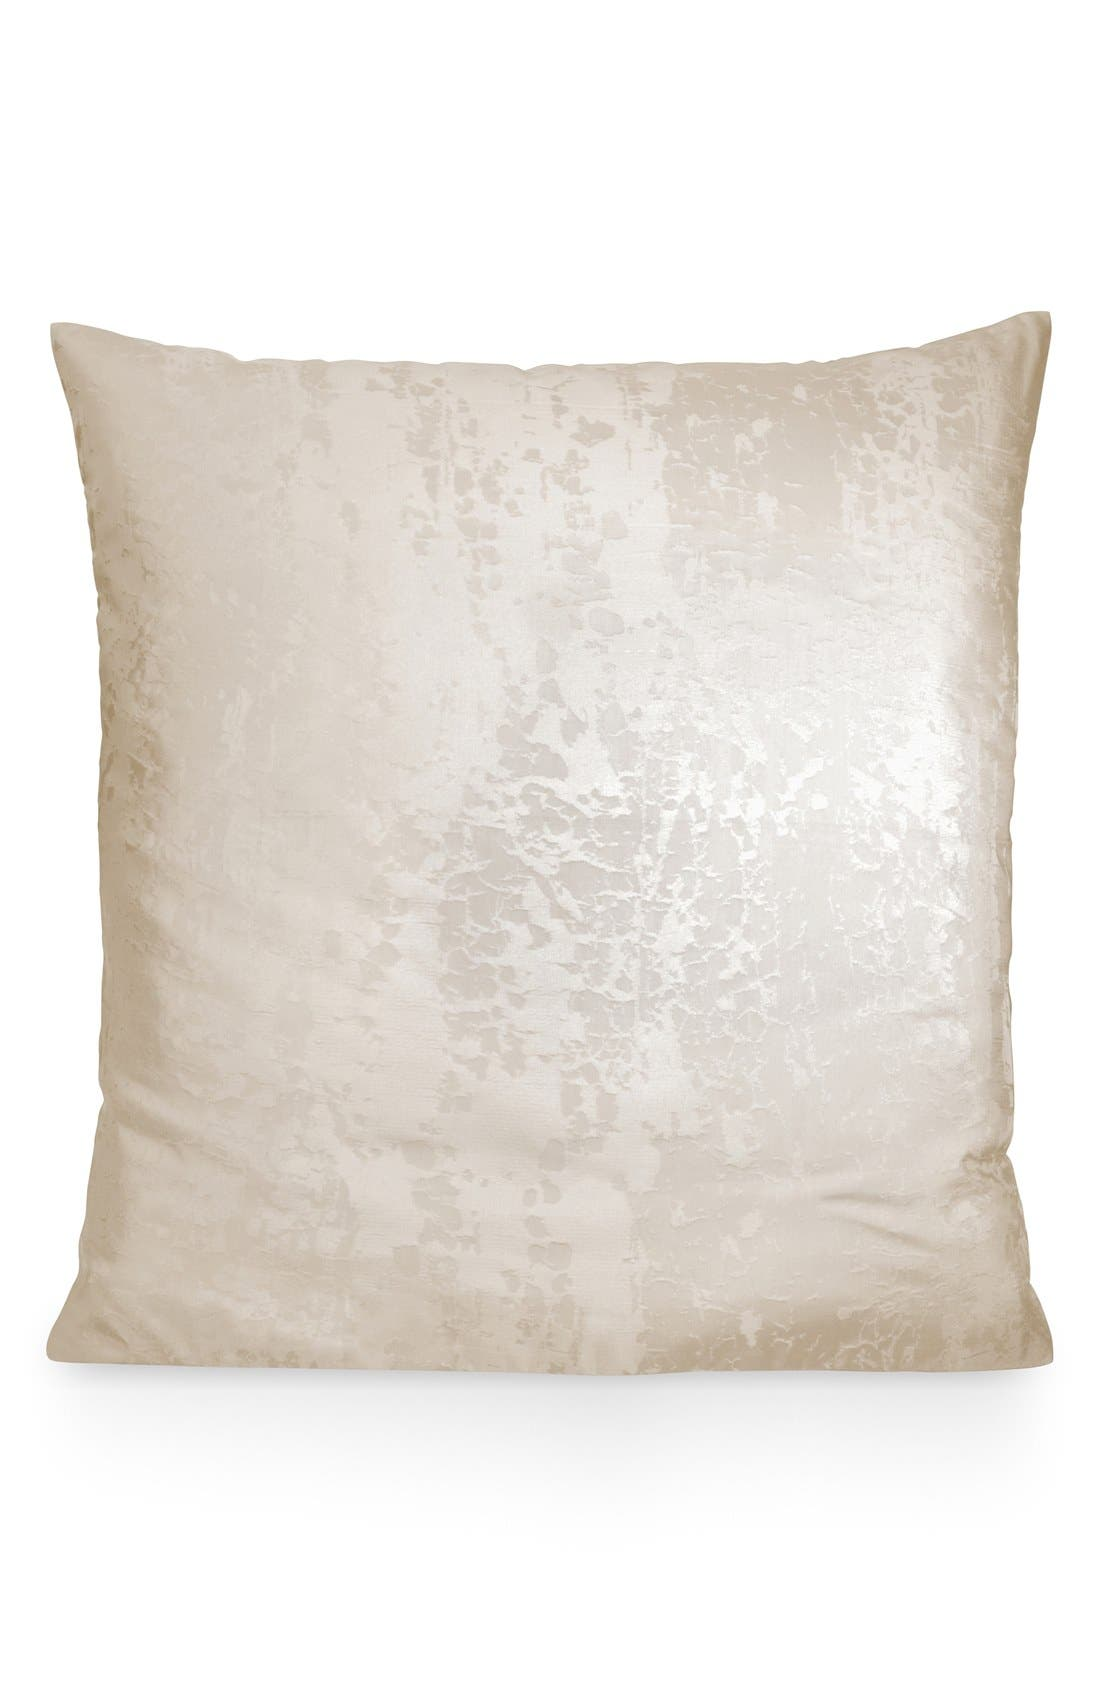 Donna Karan Collection 'Moonscape' Euro Pillow Sham